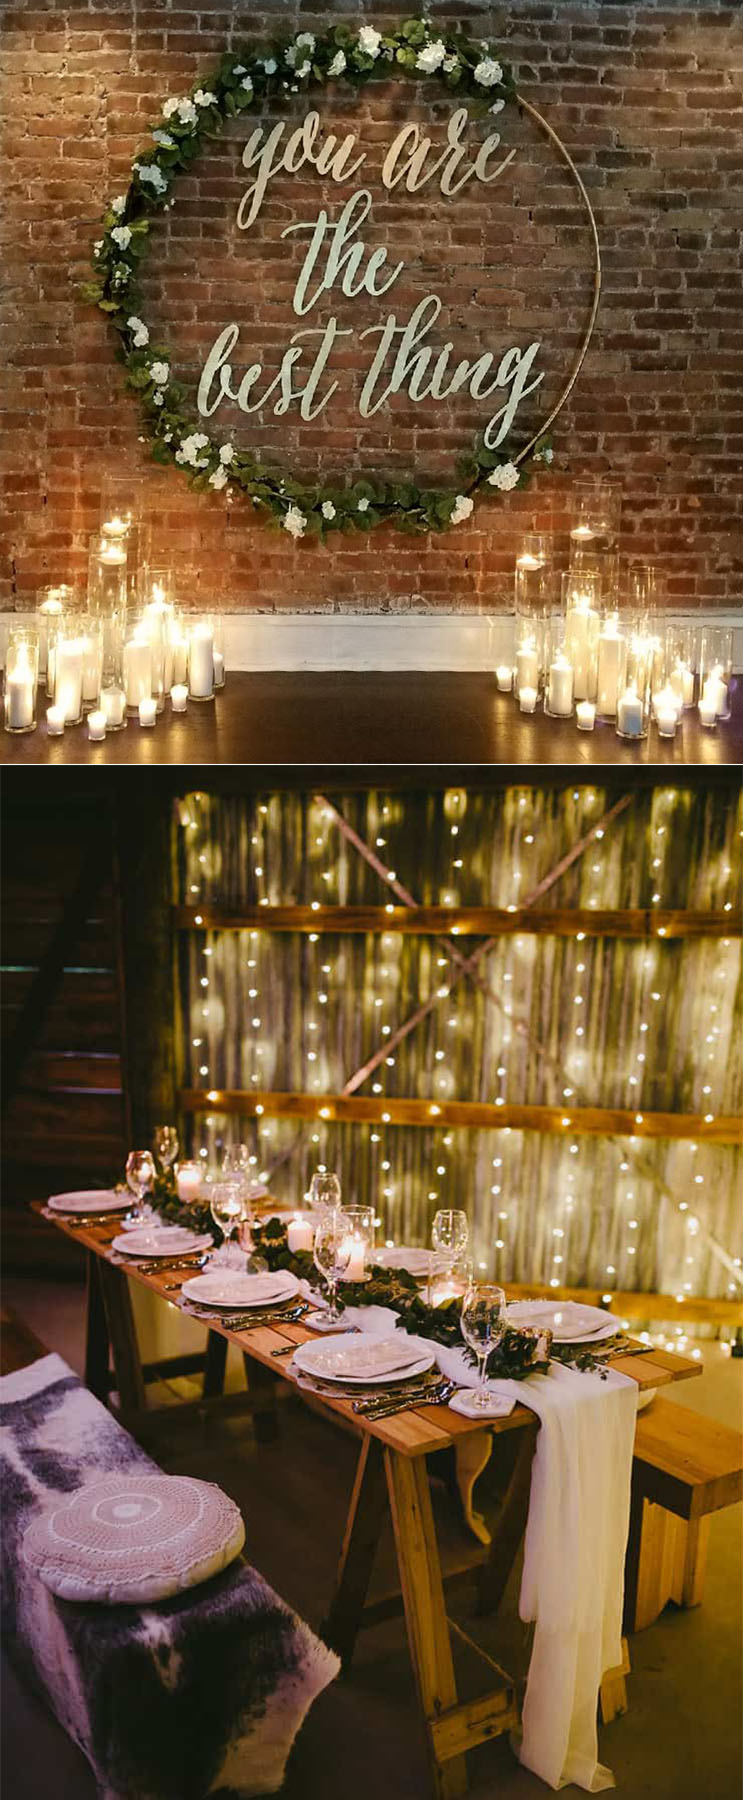 White And Grenery Evening Wedding Ideas Under Lights